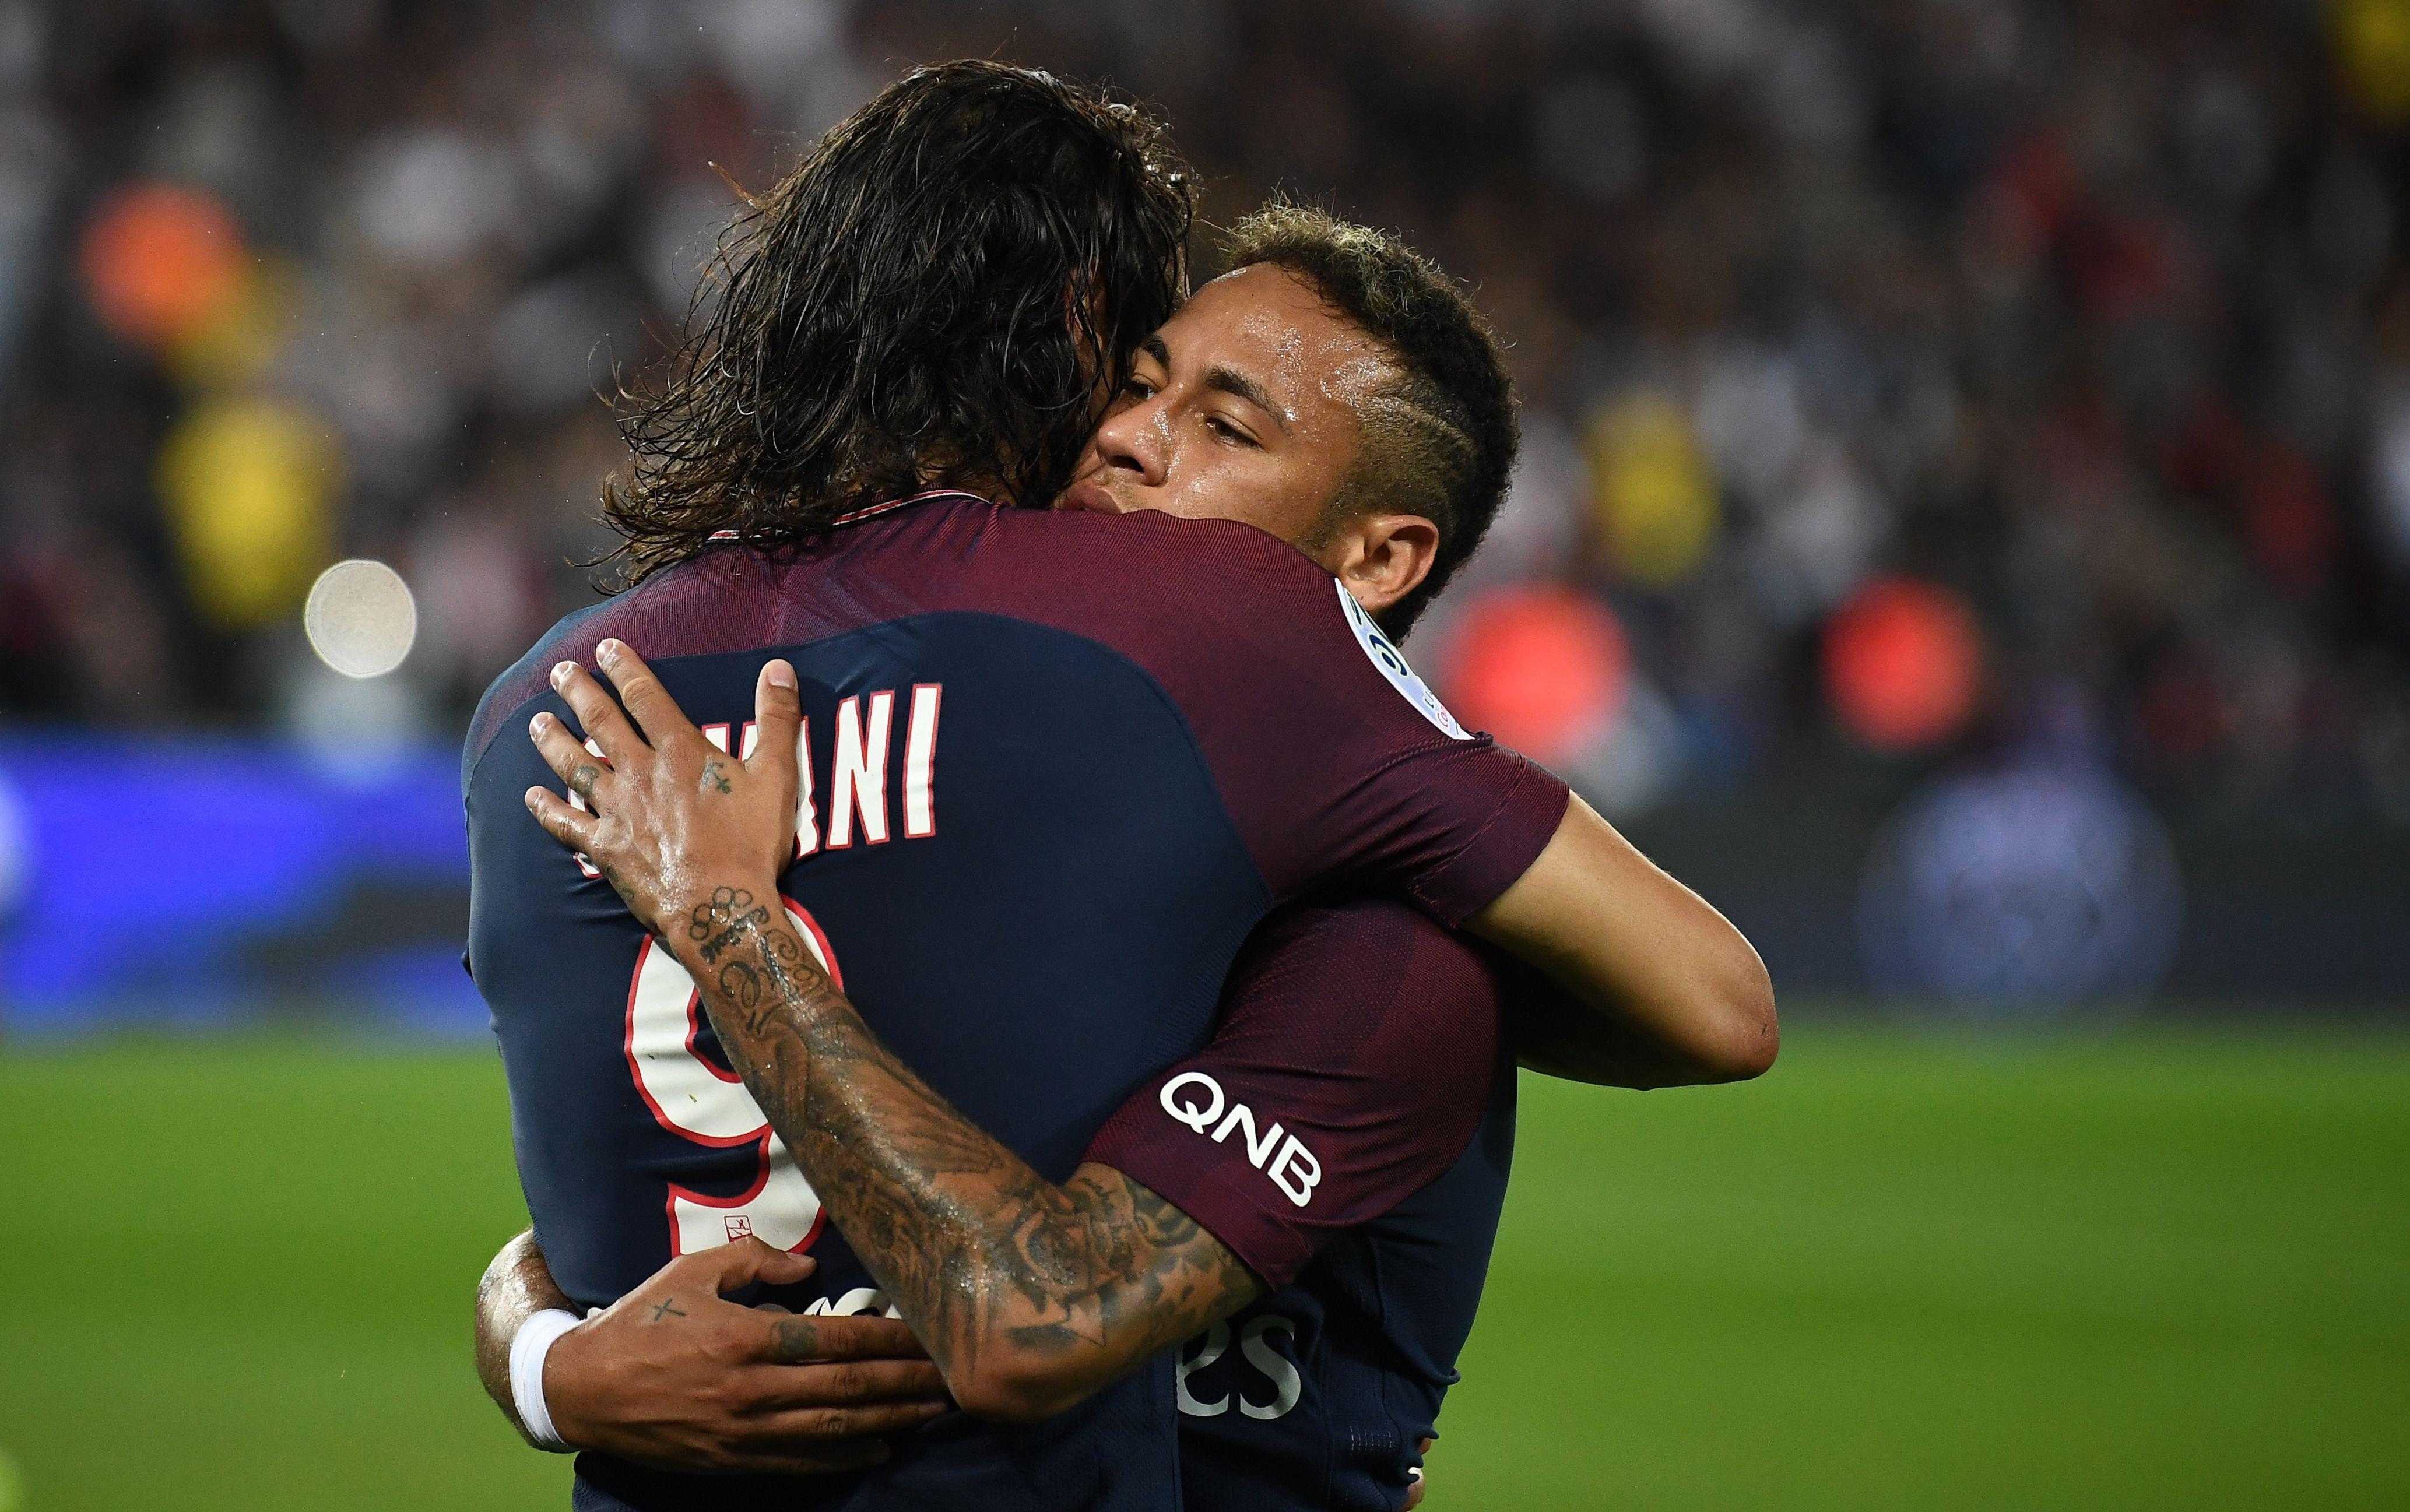 Kylian Mbappe will now join Edinson Cavani and Neymar in the PSG attack